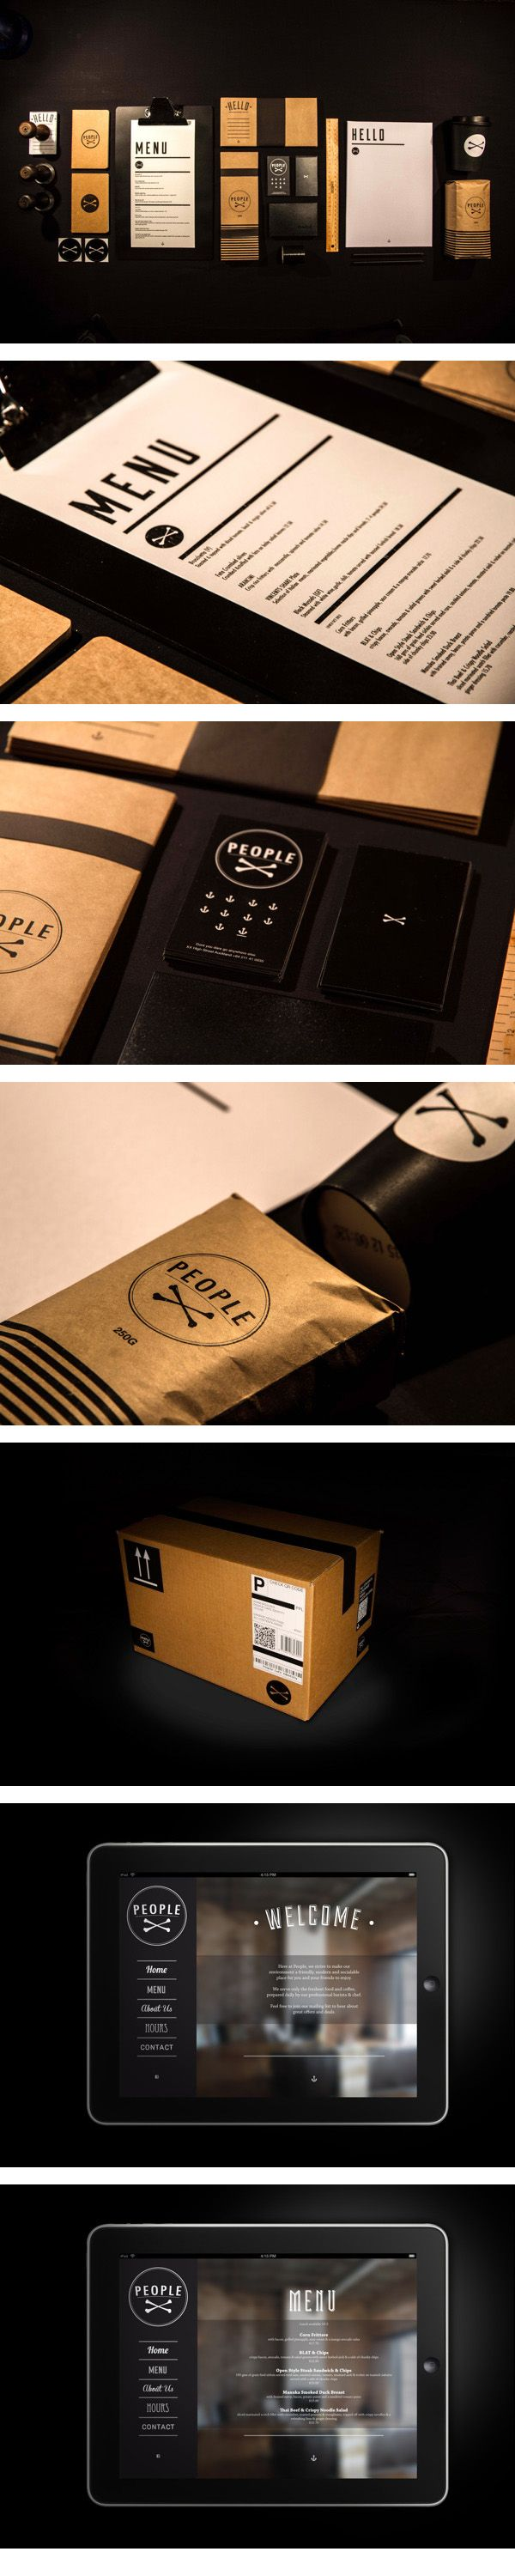 White apron menu warrington - Designspiration Is The Hub For Discovering Great Art Design Architecture Photography Typography And Web Inspiration